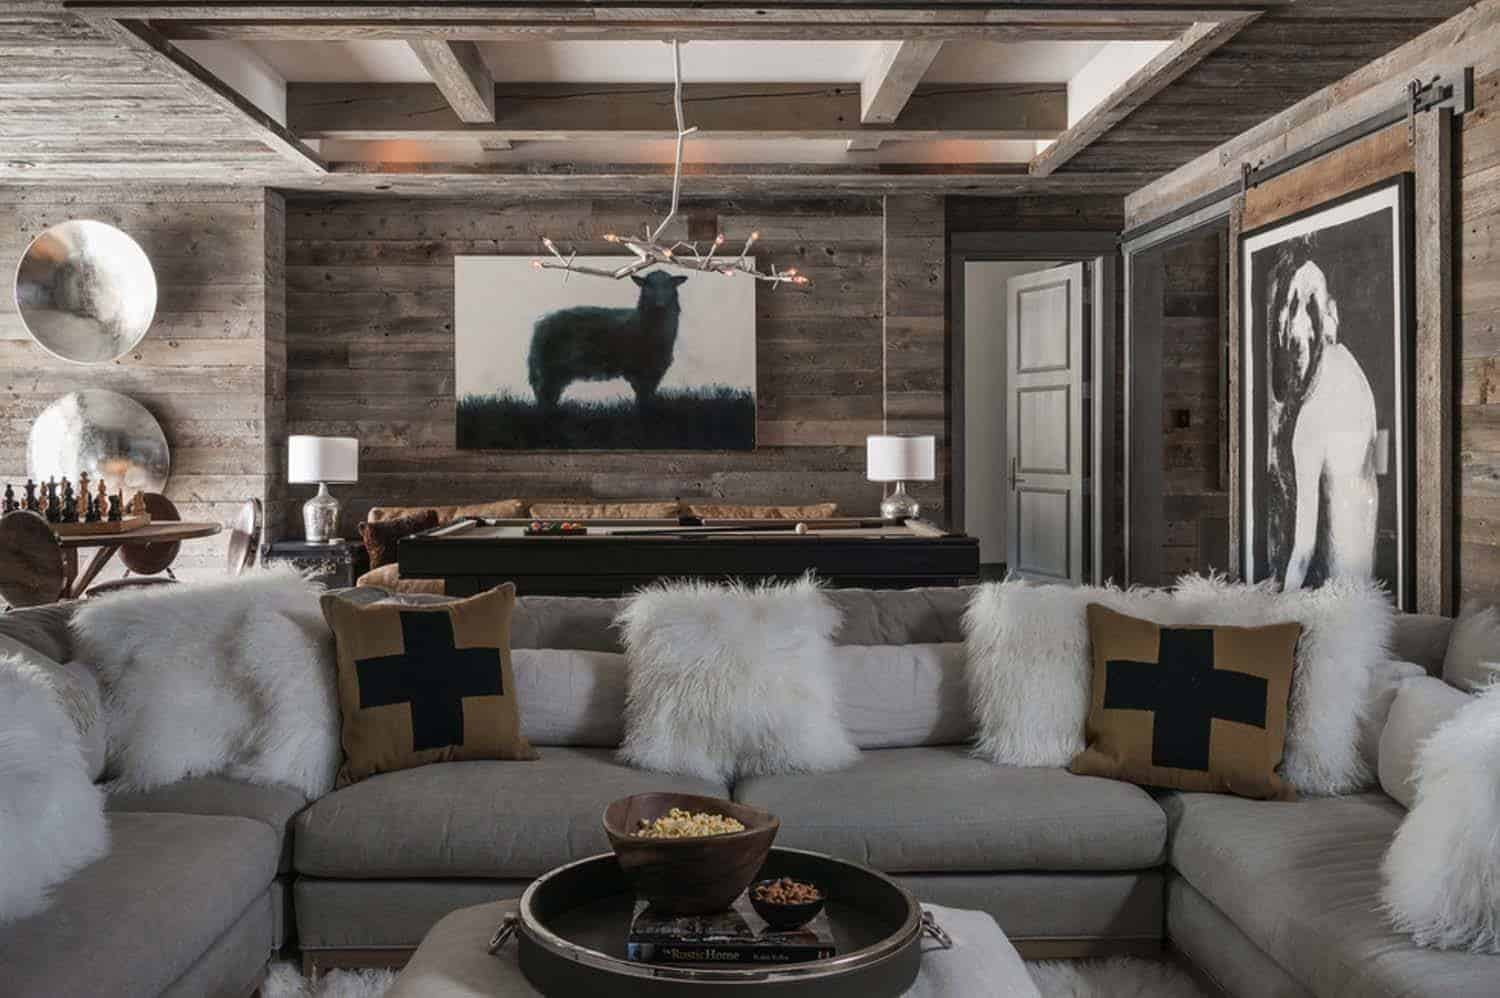 Ski Chalet Interior Design ski-in/ski-out chalet in montana with rustic-modern styling